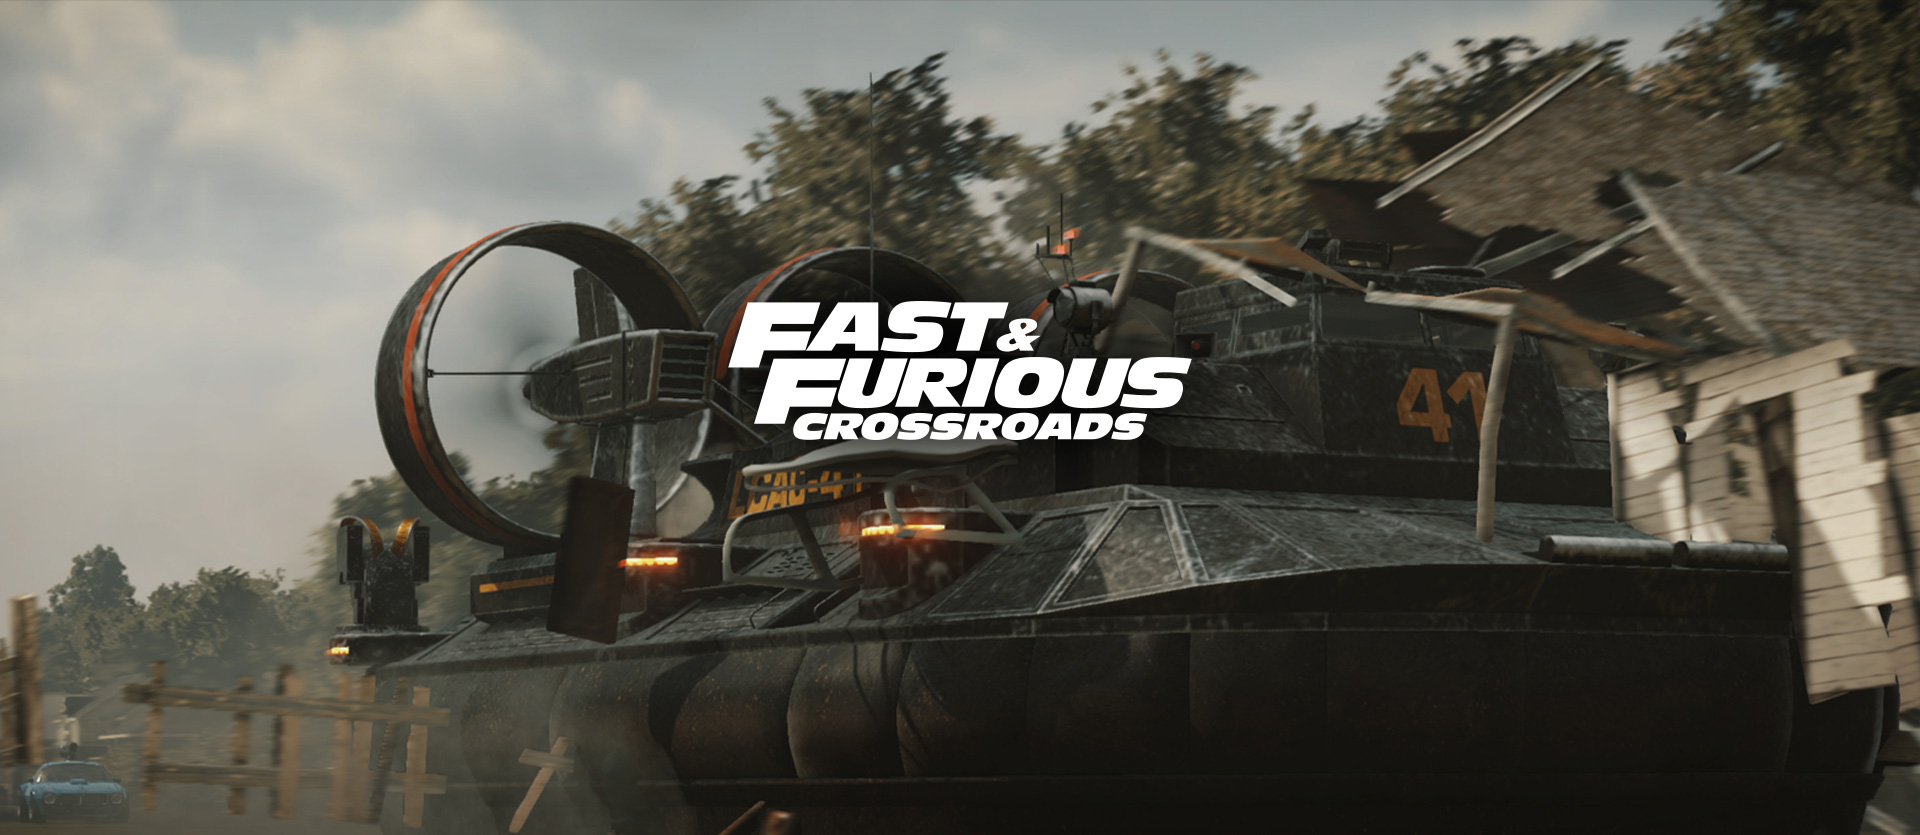 Fast and furious crossroads, a hover-boat crashes into a building